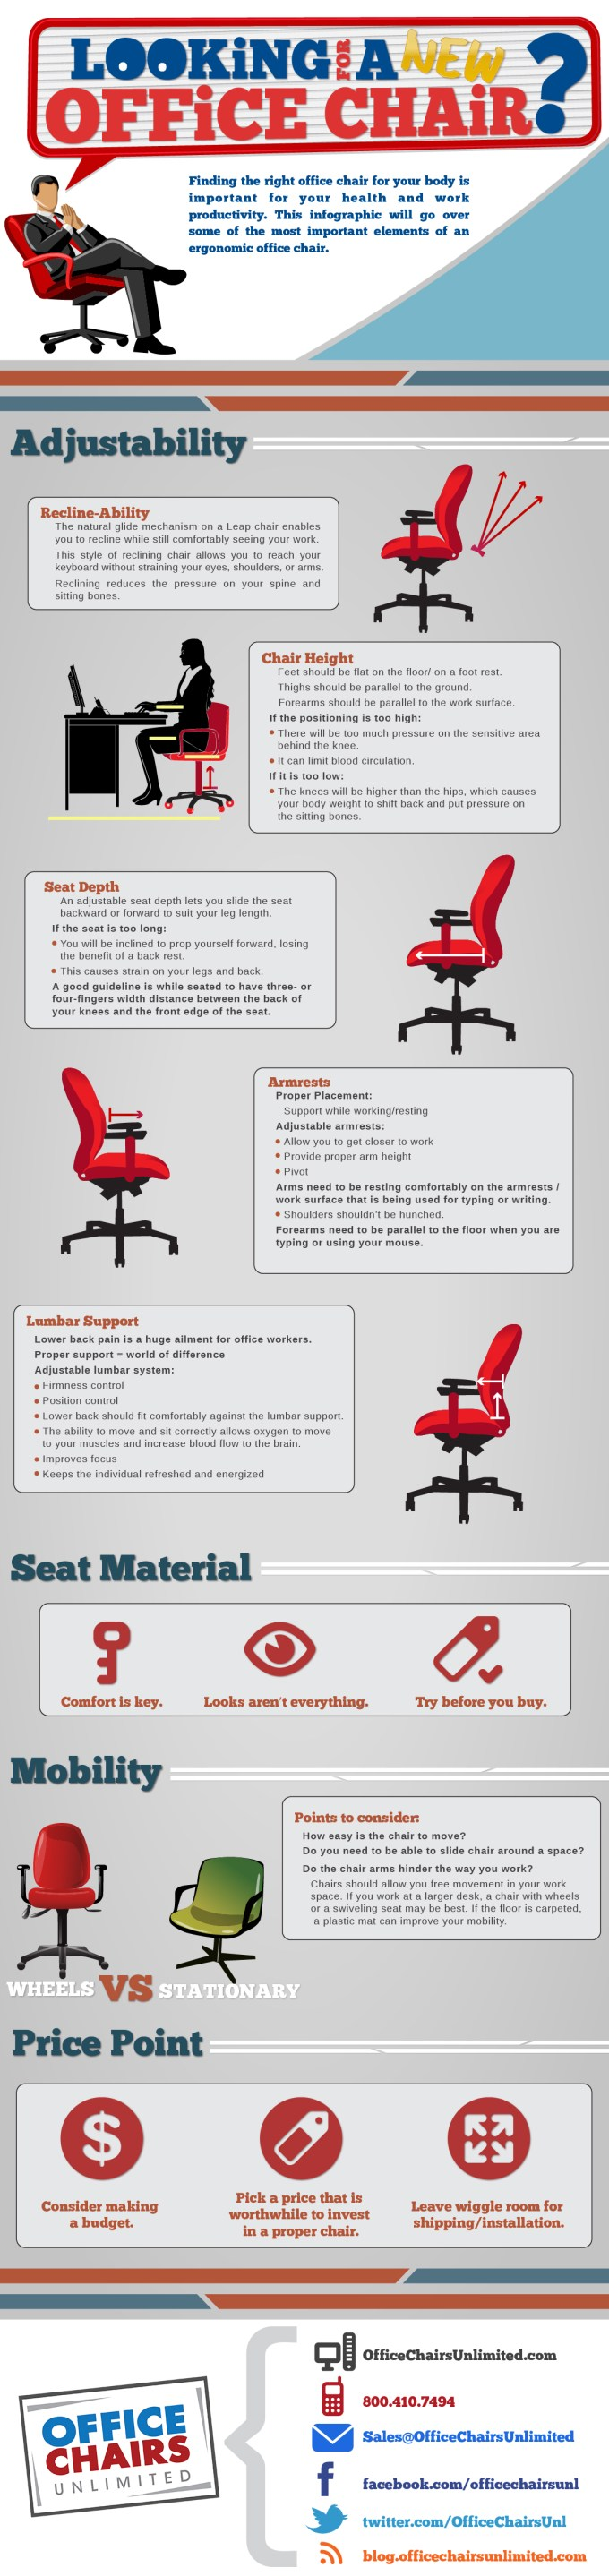 Choosing a New Office Chair